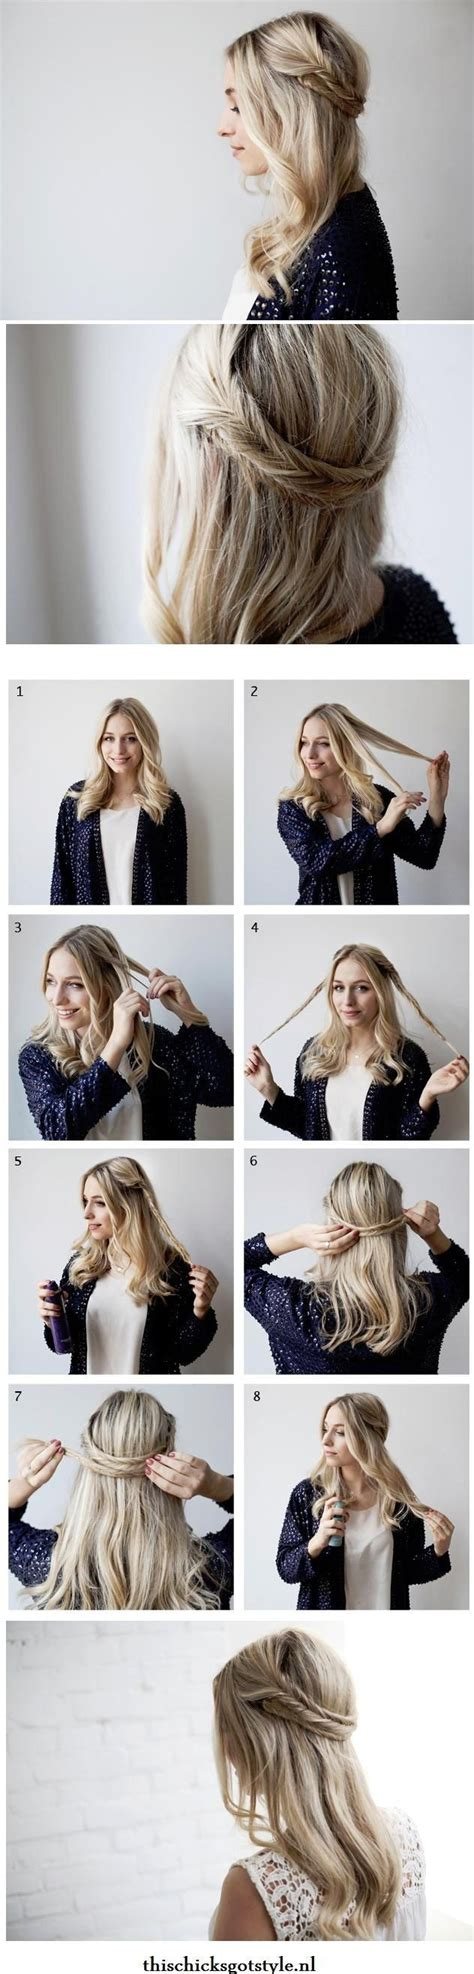 20 clever and interesting tutorials for your hairstyle 20 amazing hairstyles tutorials for long hair pretty designs